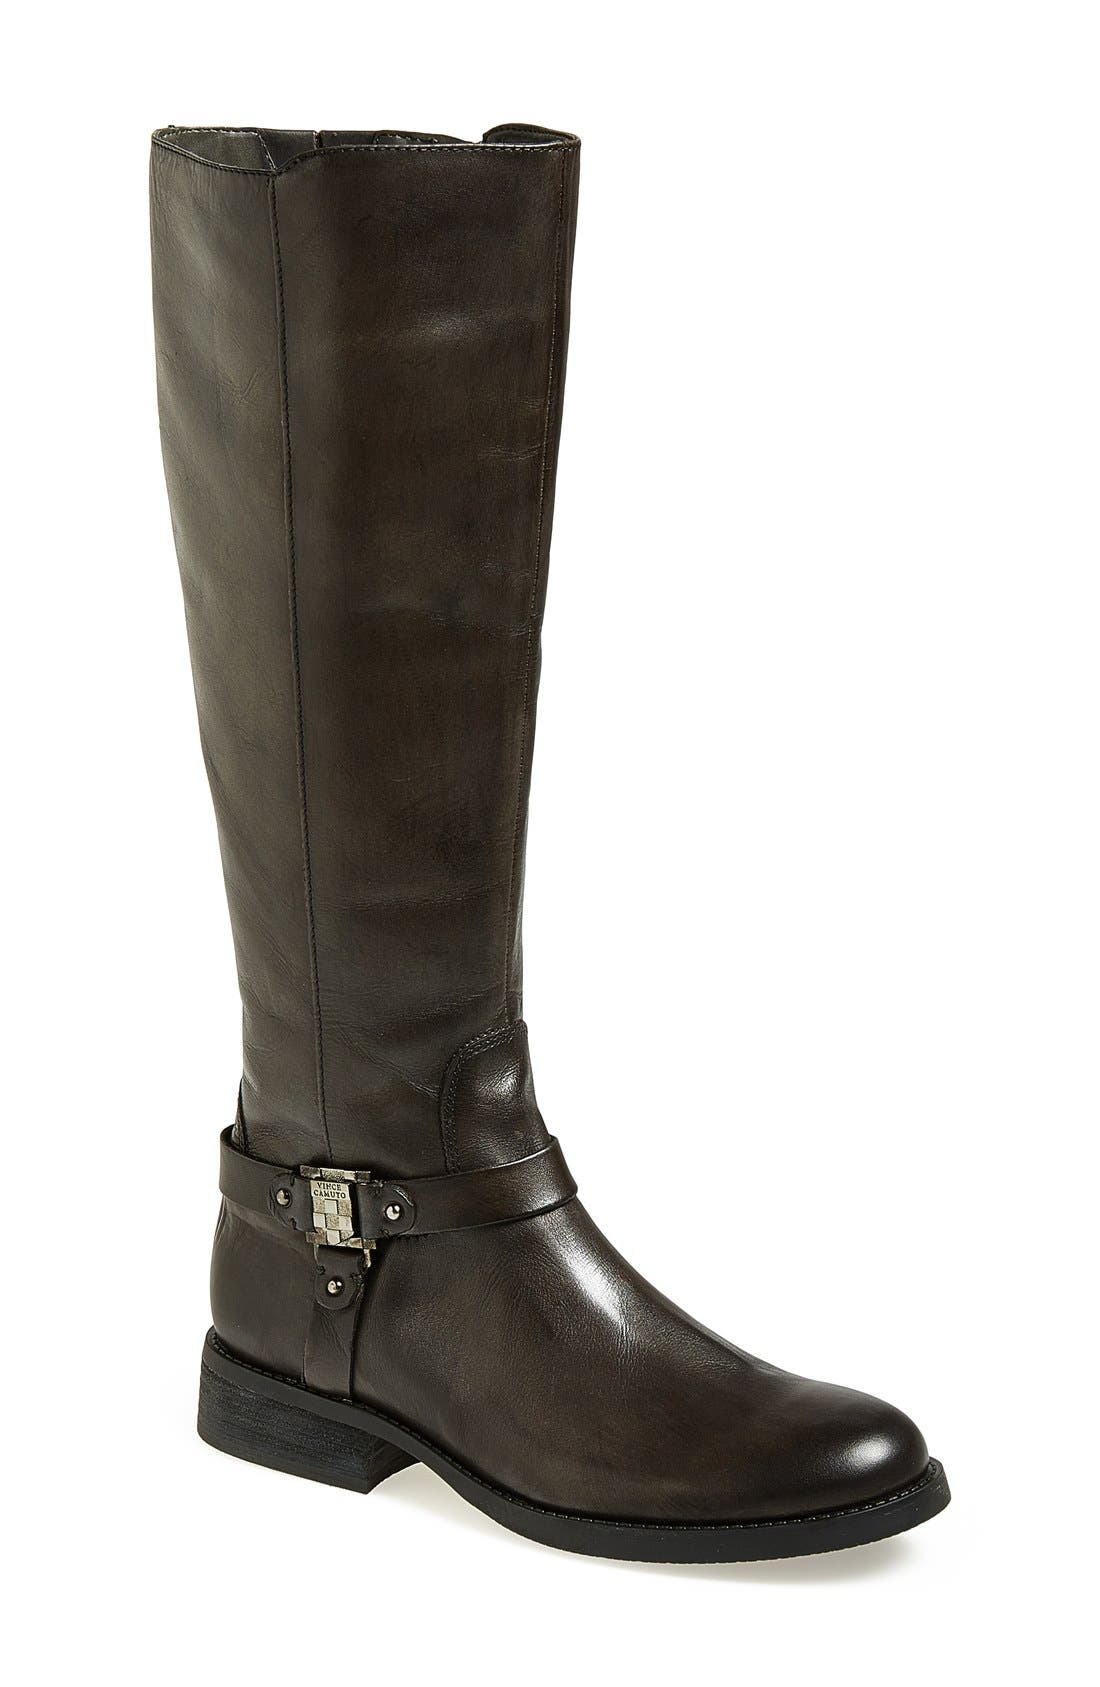 Alternate Image 1 Selected - Vince Camuto 'Farren' Riding Boot (Women)